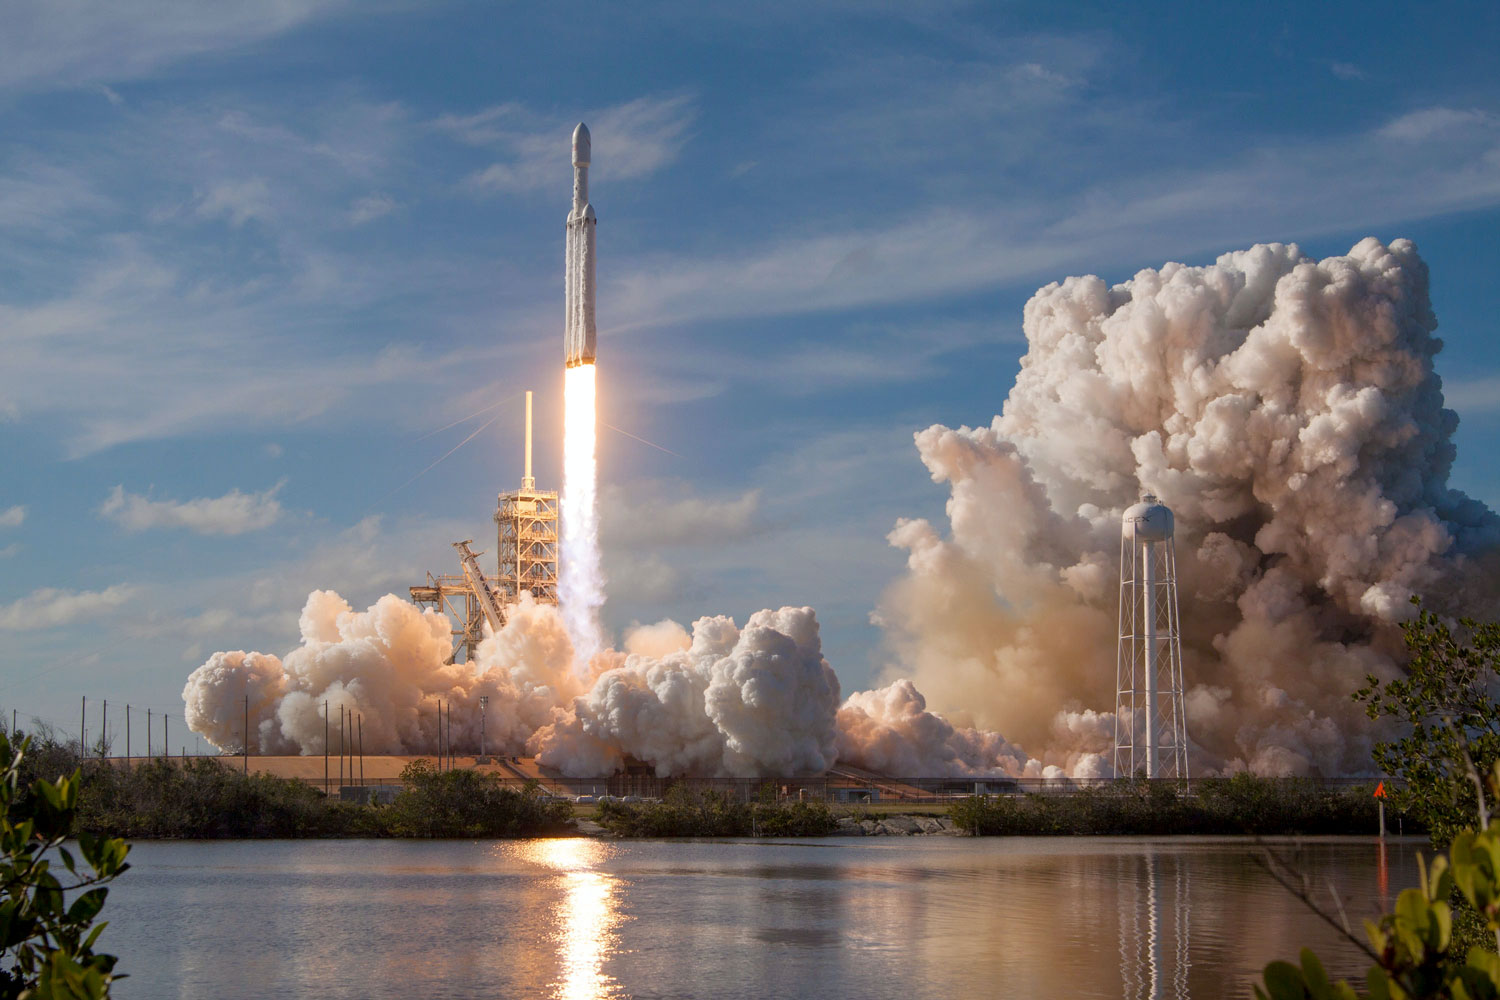 A SpaceX rocket launching at Cape Canaveral FL